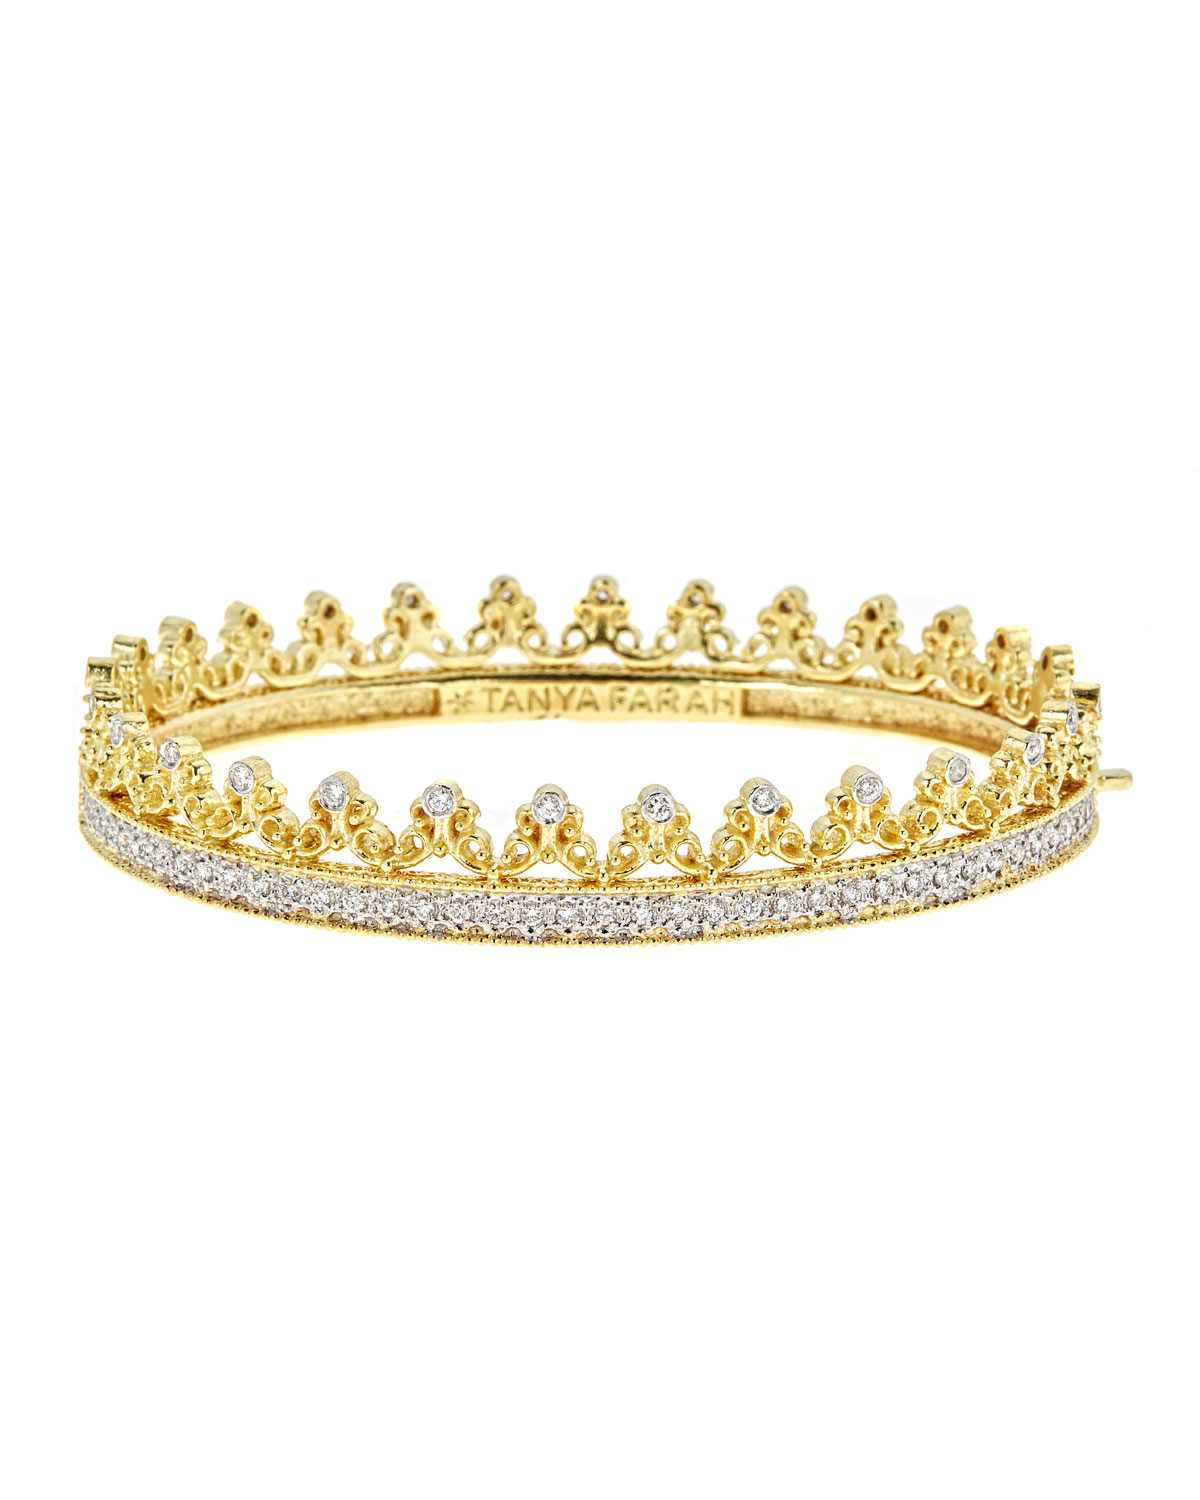 TANYA FARAH Royal Couture 18K Gold Scroll Crown Bangle With Diamonds, 2.7Tdcw